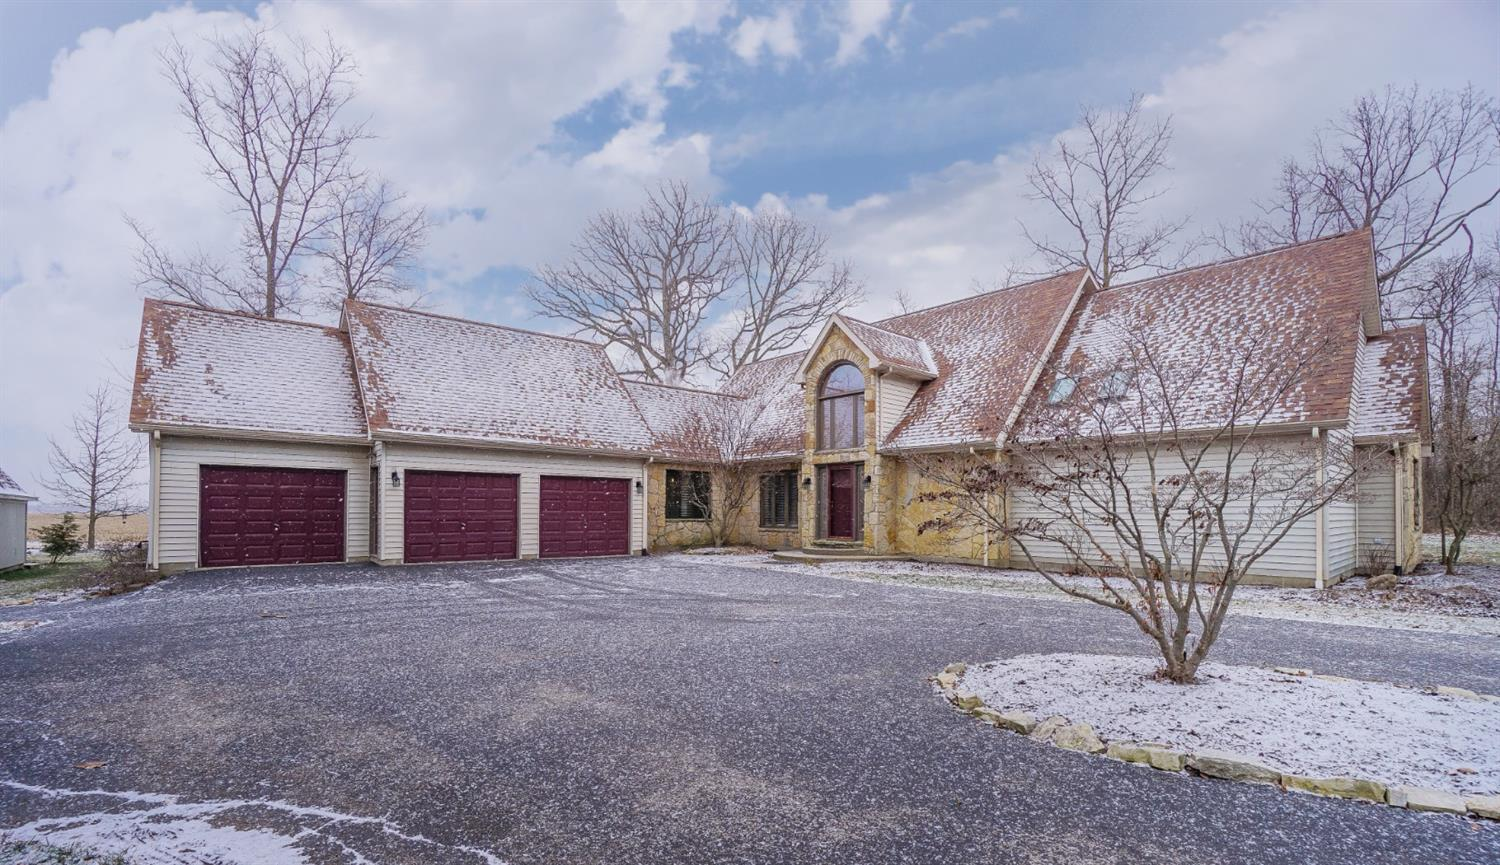 657 S St Rt 72 Richland Twp, OH